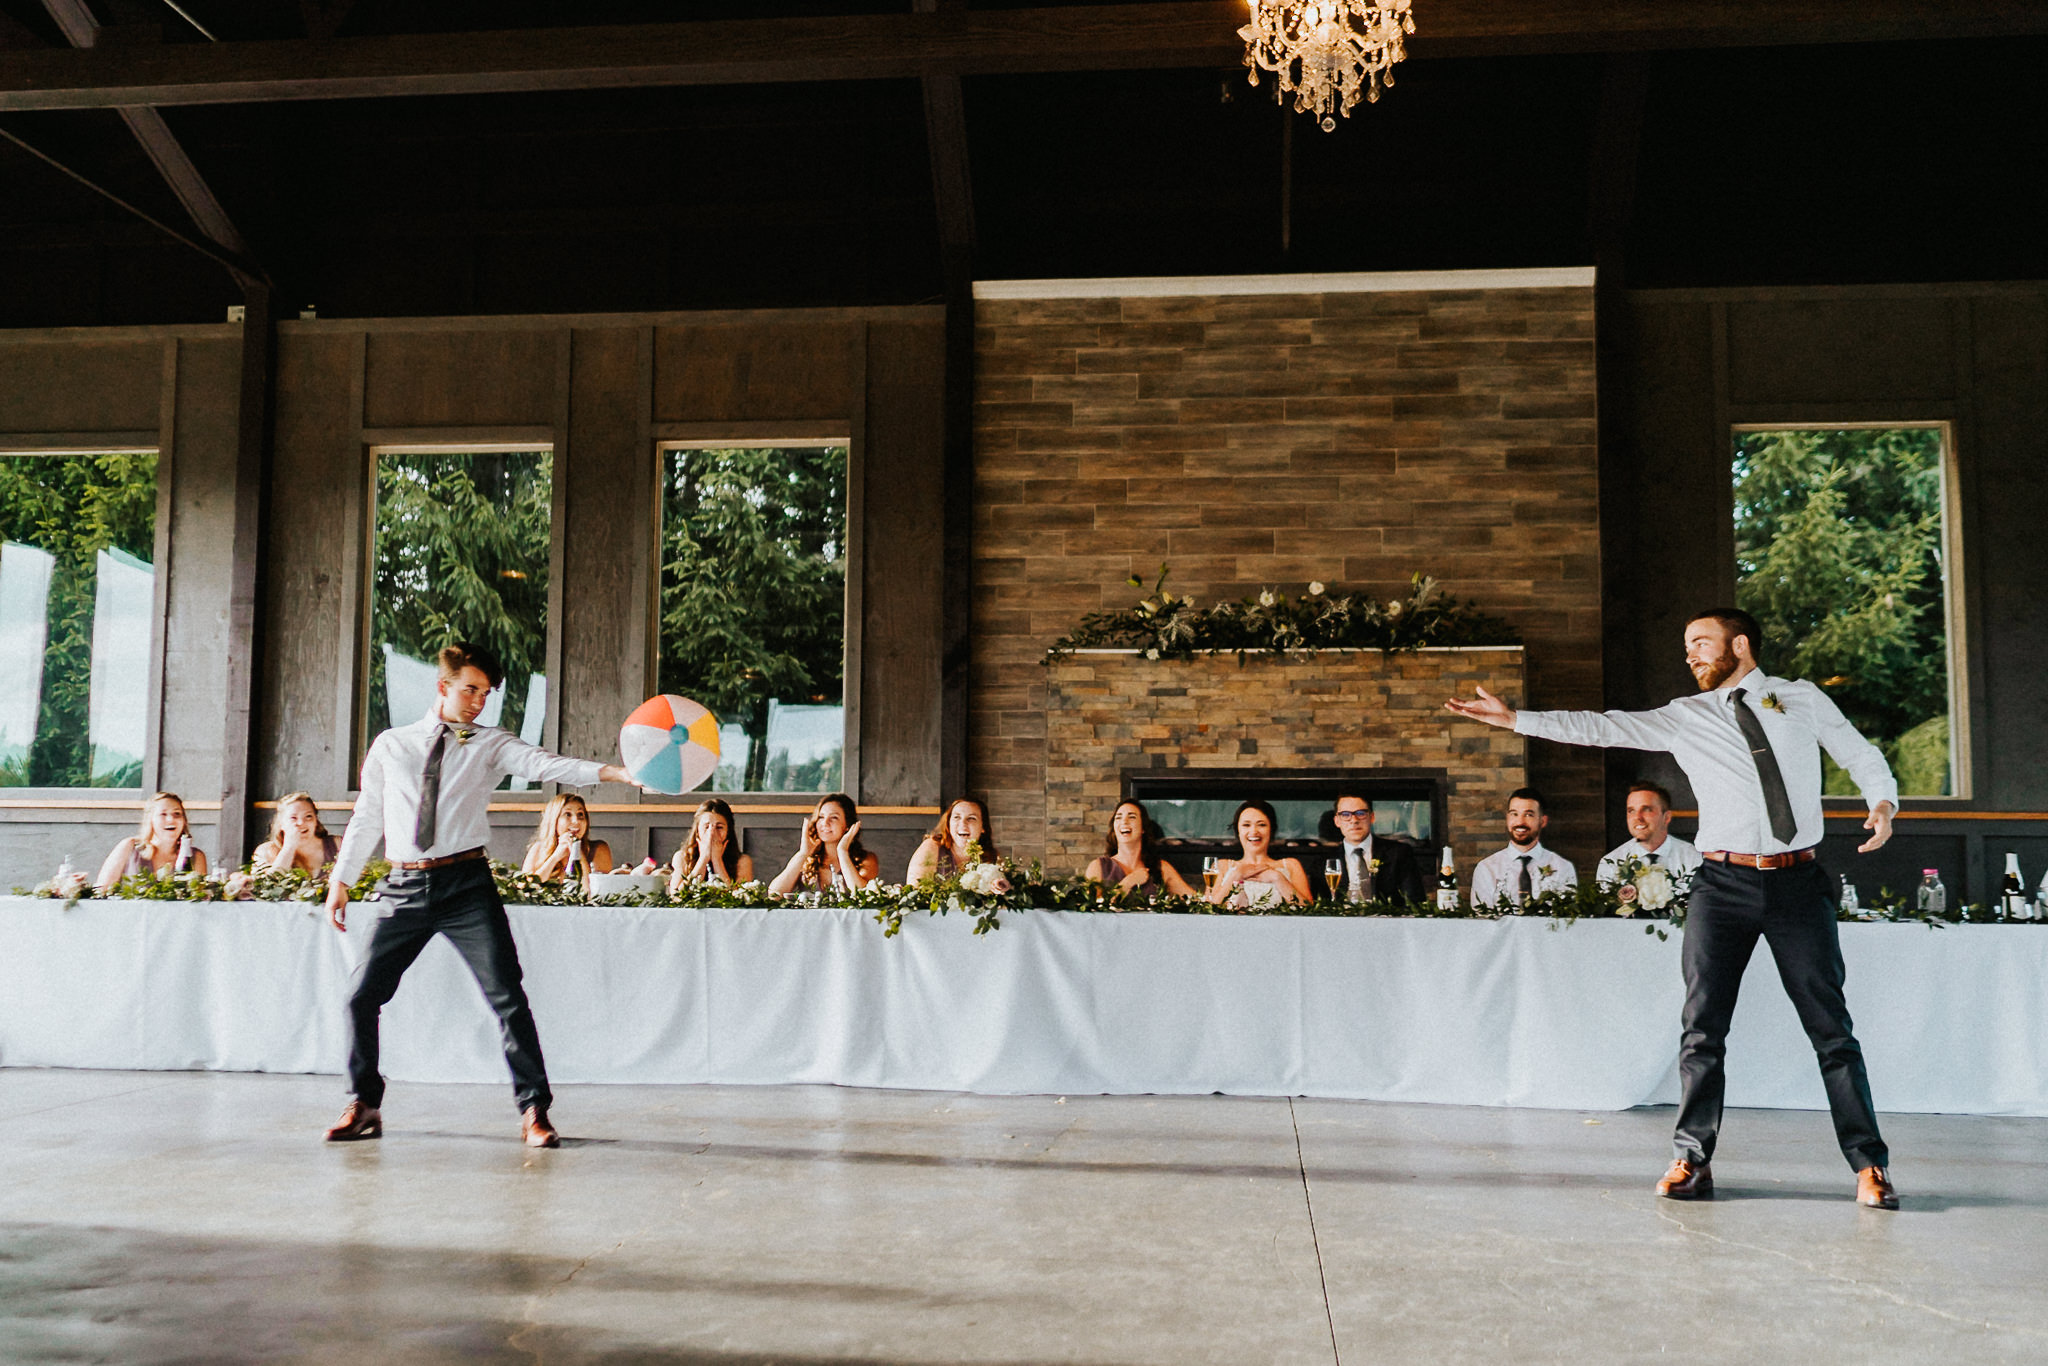 Silly Family wedding dance Water Oasis Wedding Reception